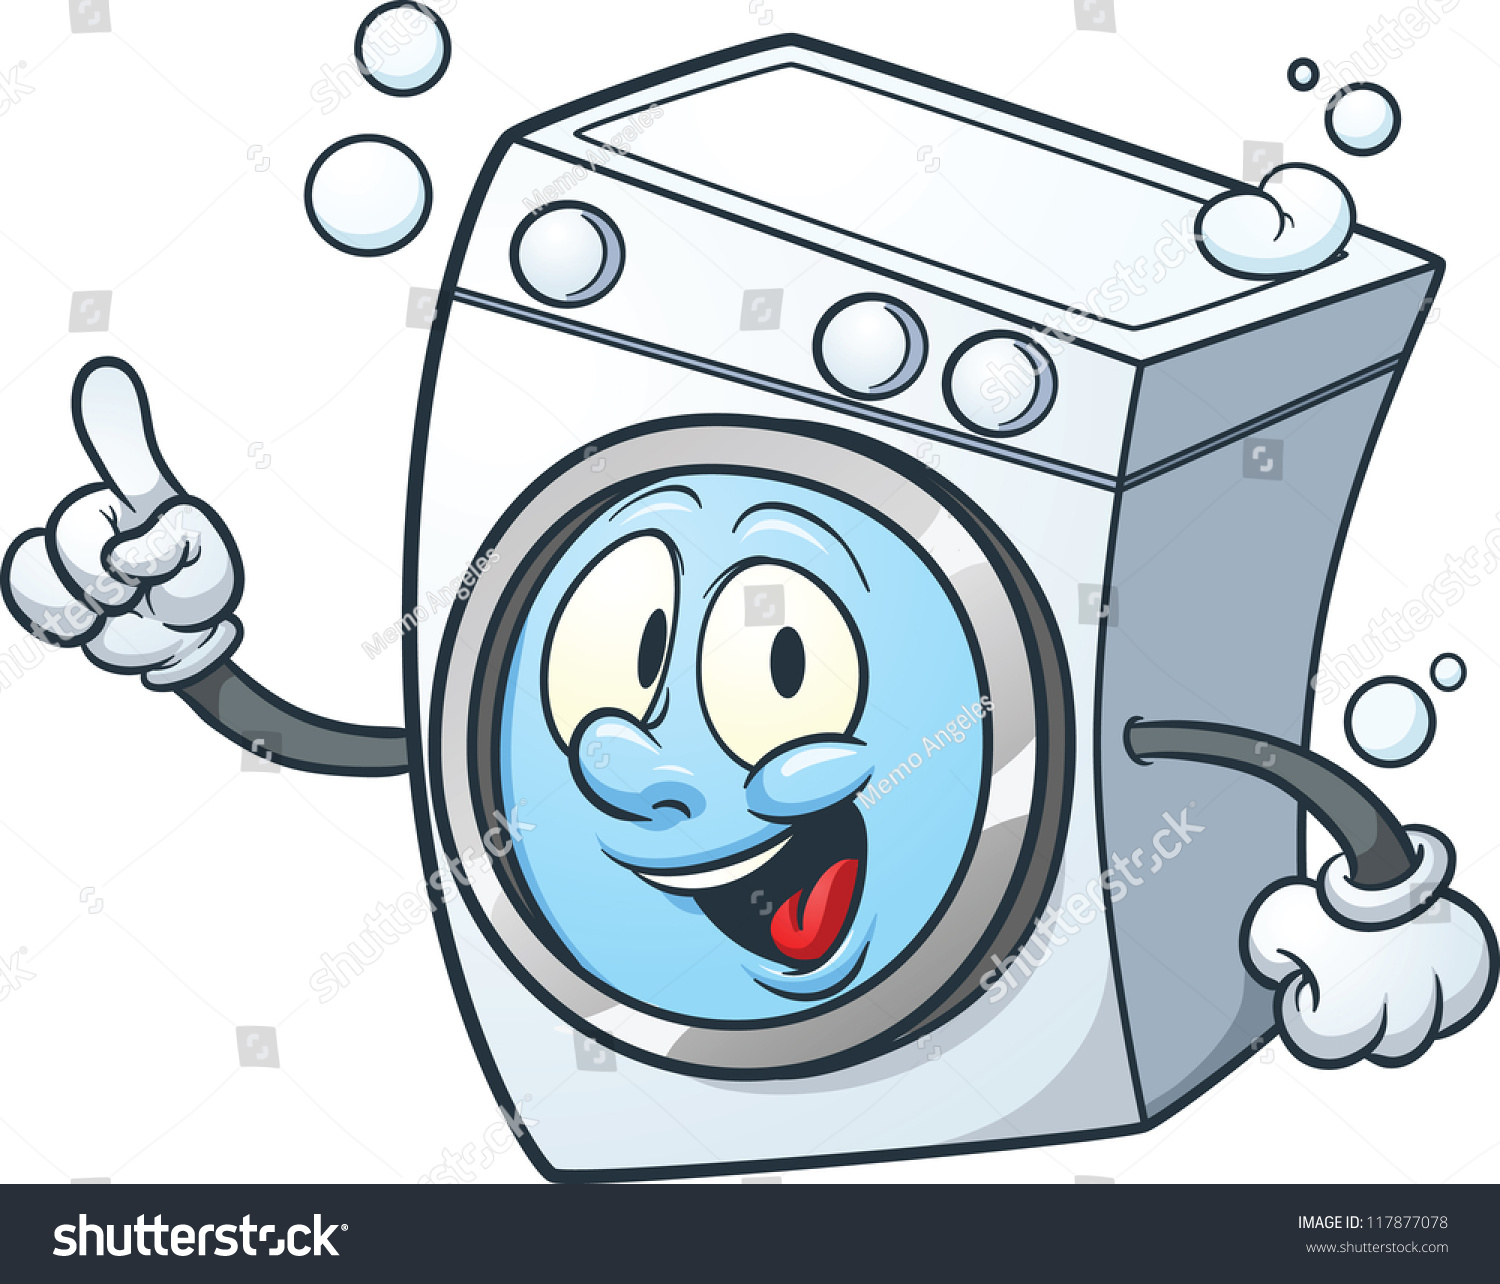 washing machine and dryer clip art. washer and dryer machine clip art washing s